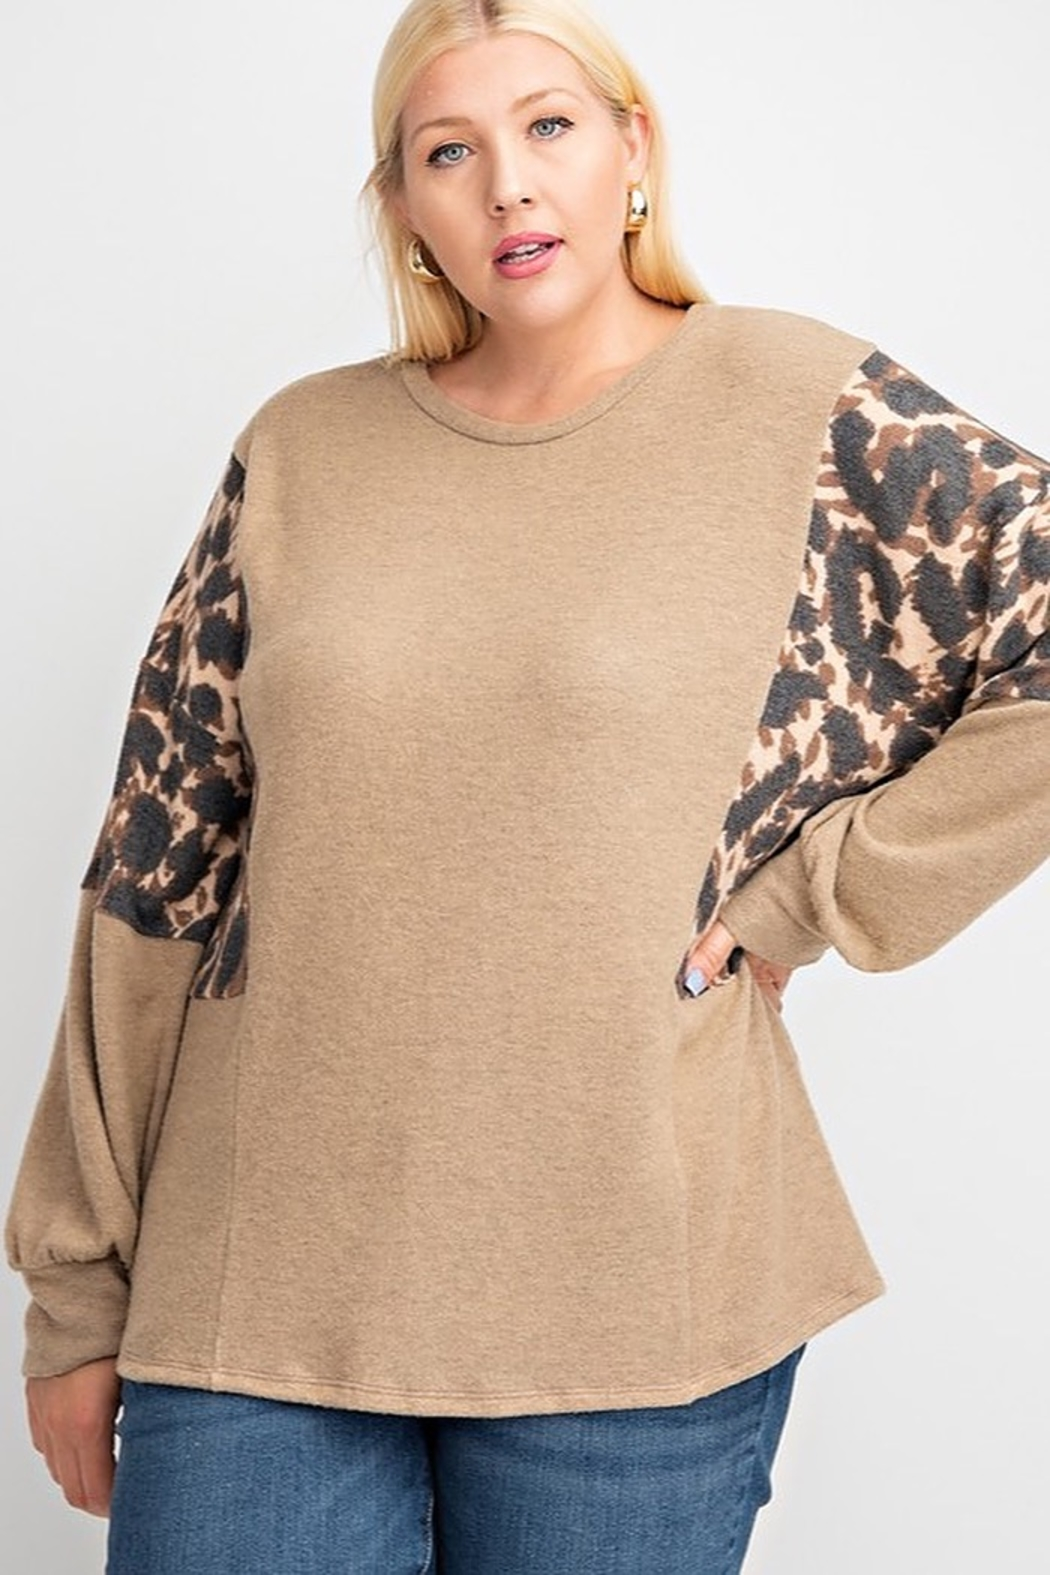 143 Story LEOPARD PRINT BRUSHED SOFT KNIT CONTRAST BUBBLE LONG SLEEVE TOP - Main Image